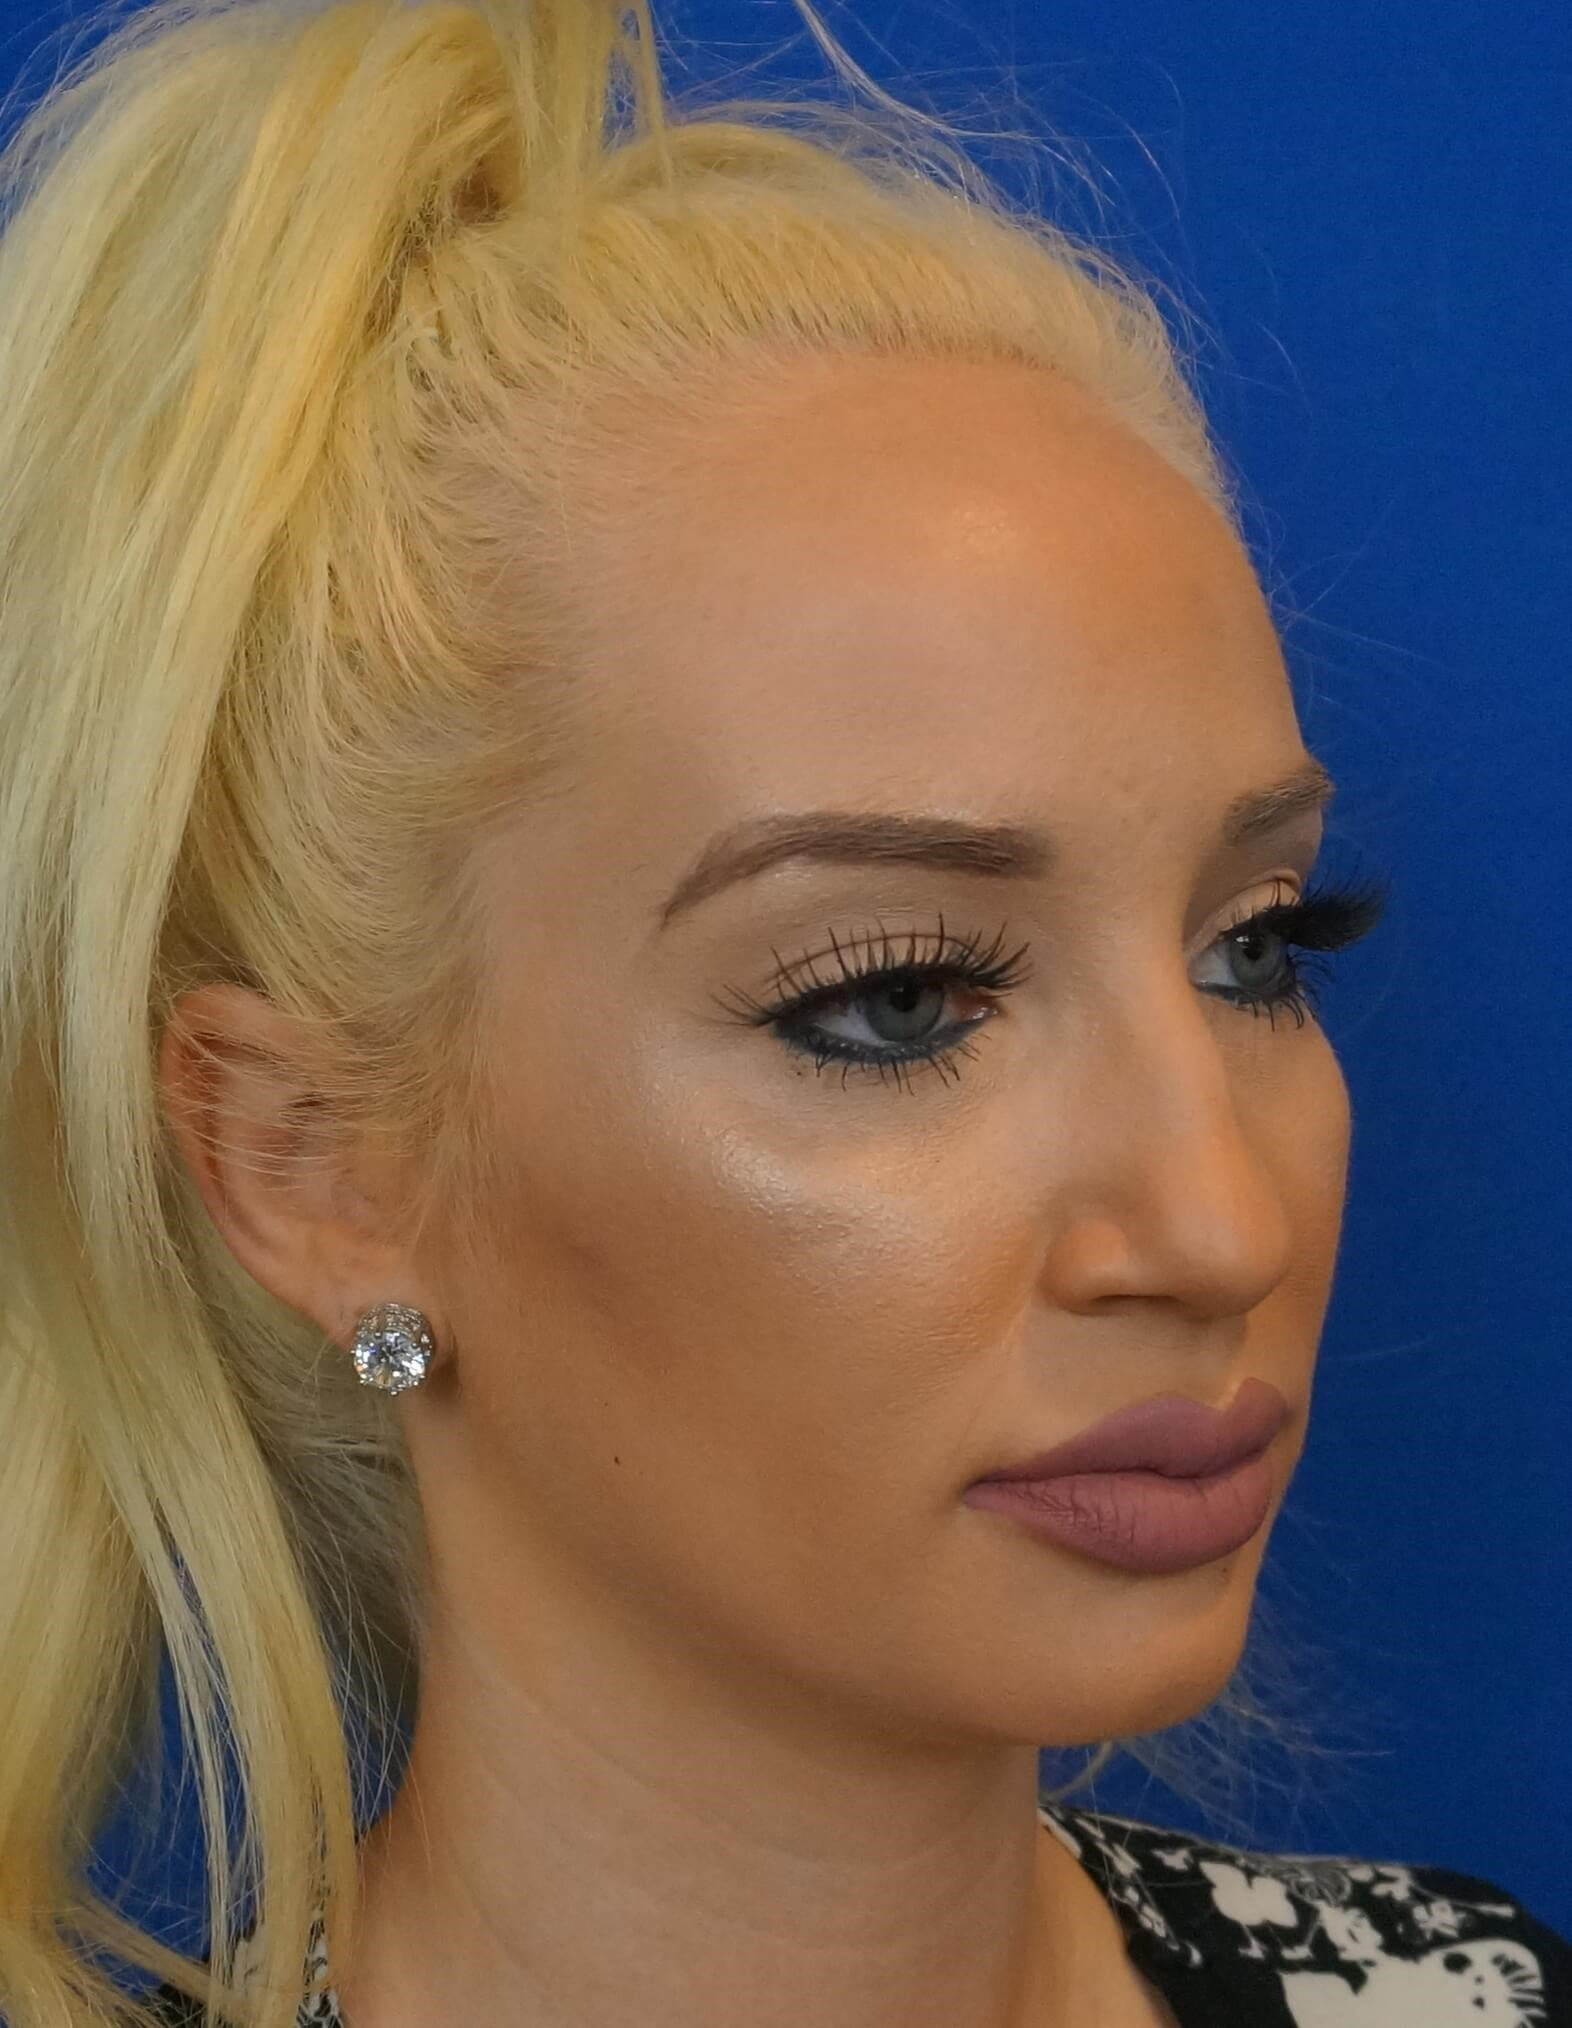 Rhinoplasty Surgeon Las Vegas Before Rhinoplasty Photo